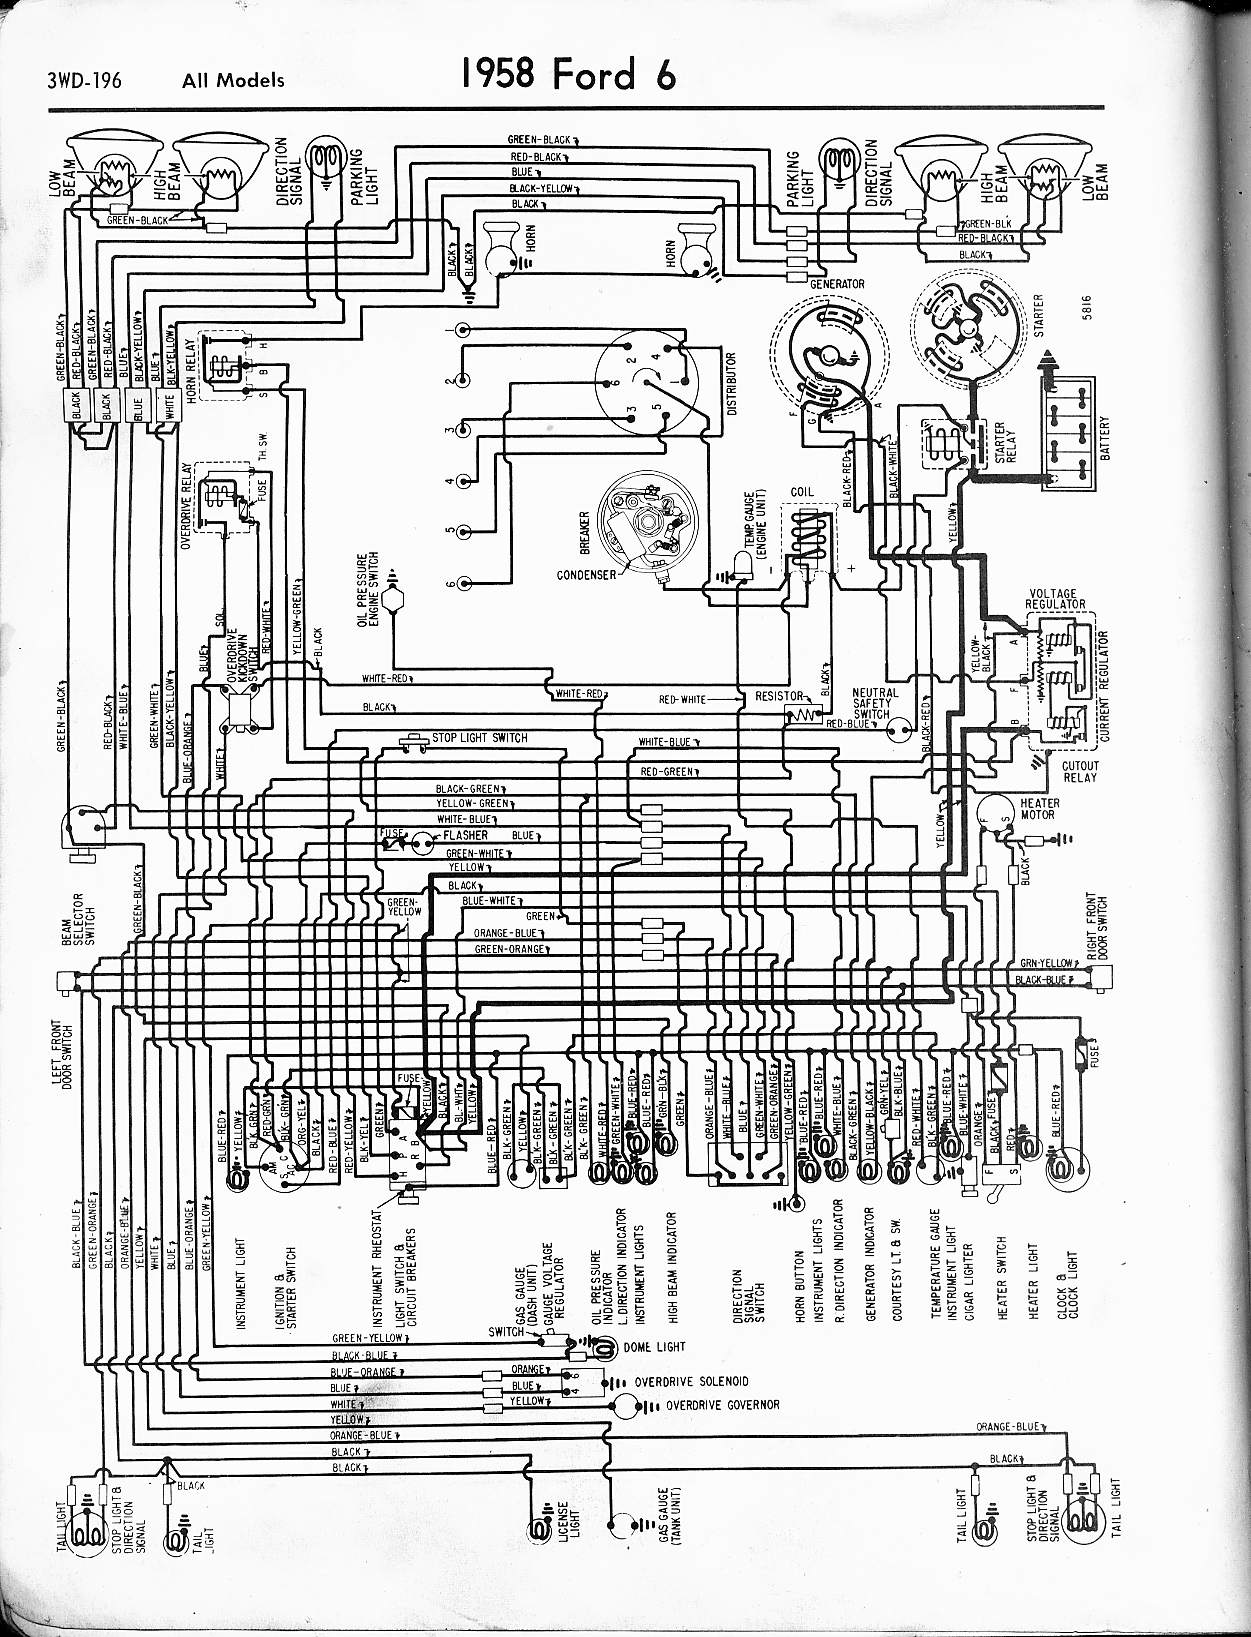 Wiring Diagram 1981 Ford Thunderbird Reveolution Of 1996 Transmission Schematic F250 Rh Theodocle Fion Com Harness Diagrams 1988